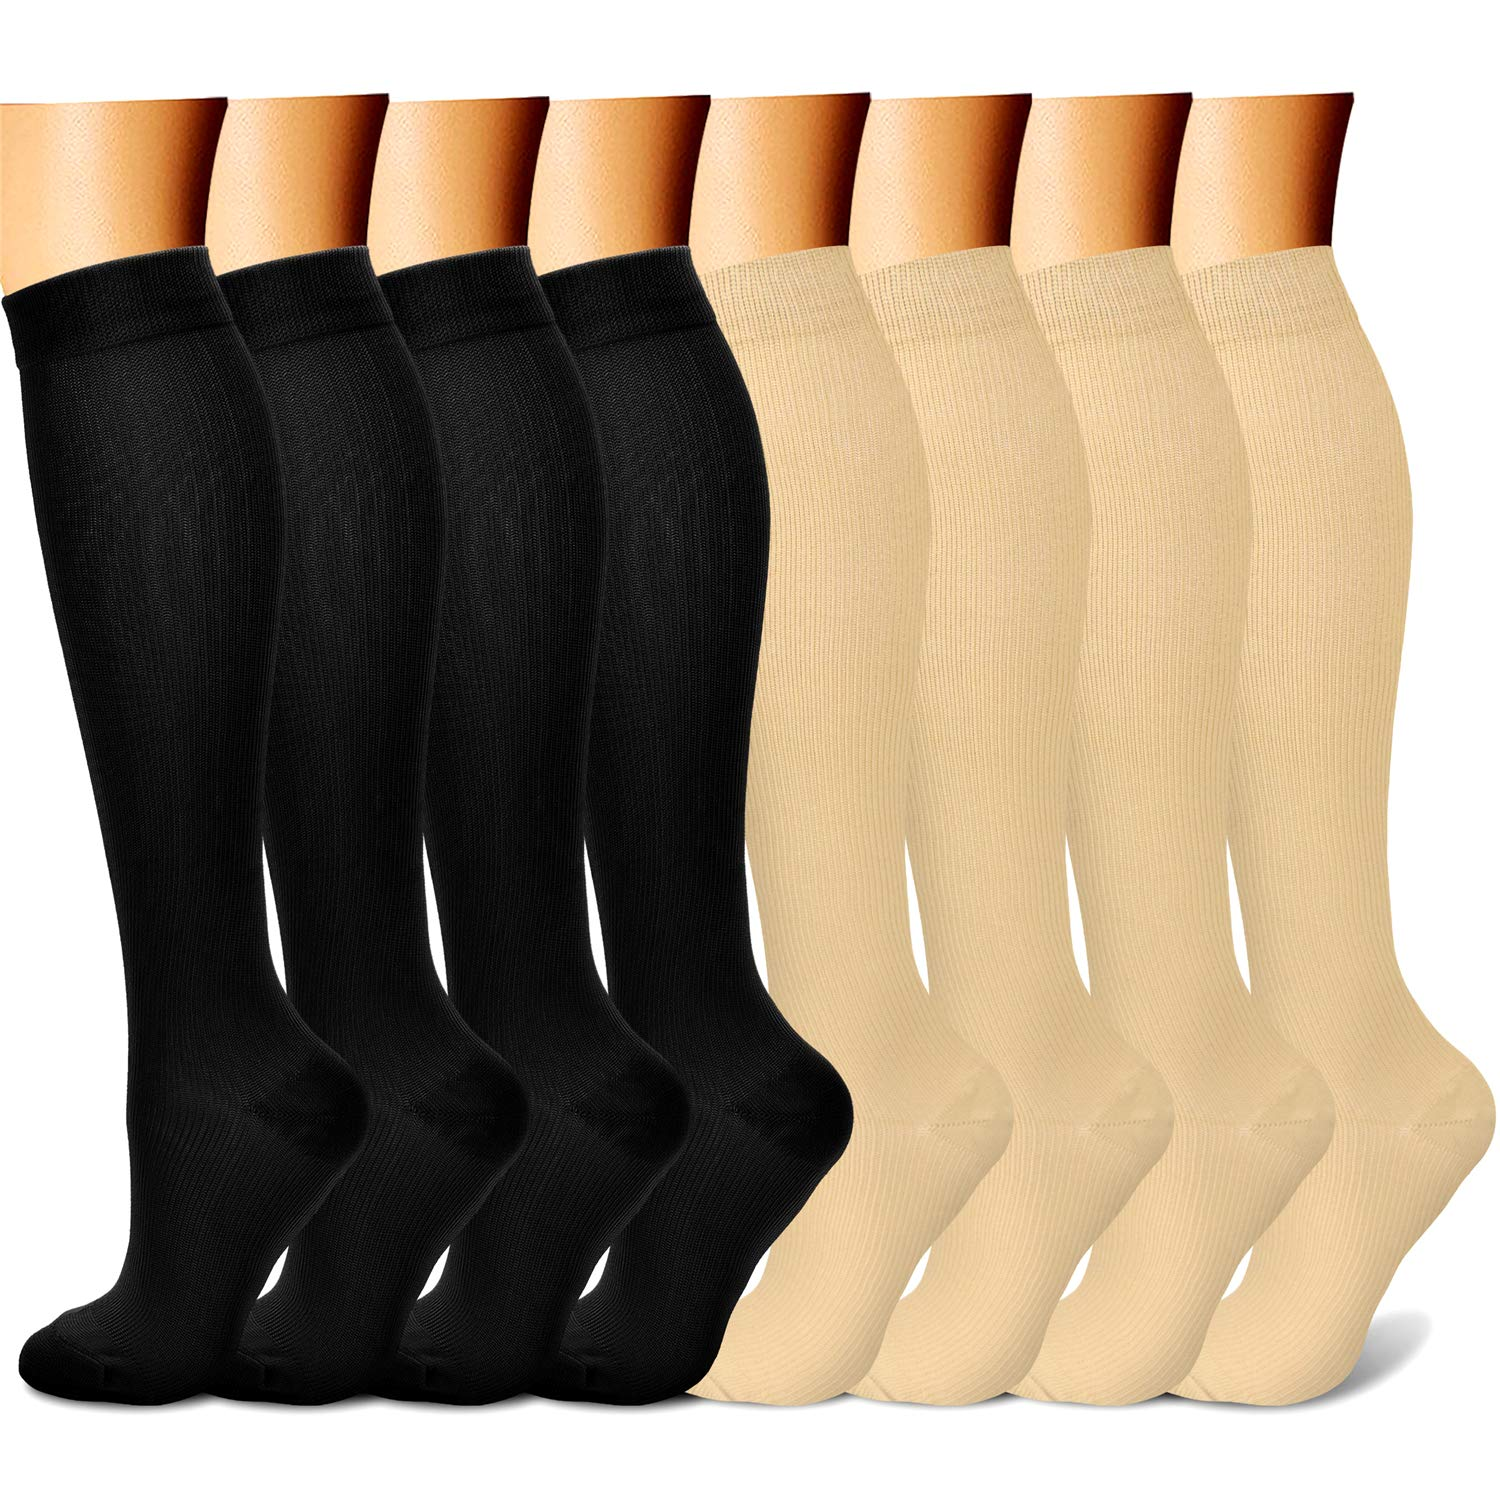 CHARMKING Compression Socks 15-20 mmHg is BEST Graduated Athletic & Medical for Men & Women Running, Travel, Nurses, Pregnant - Boost Performance, Blood Circulation & Recovery(Small/Medium,Black Nude) by CHARMKING